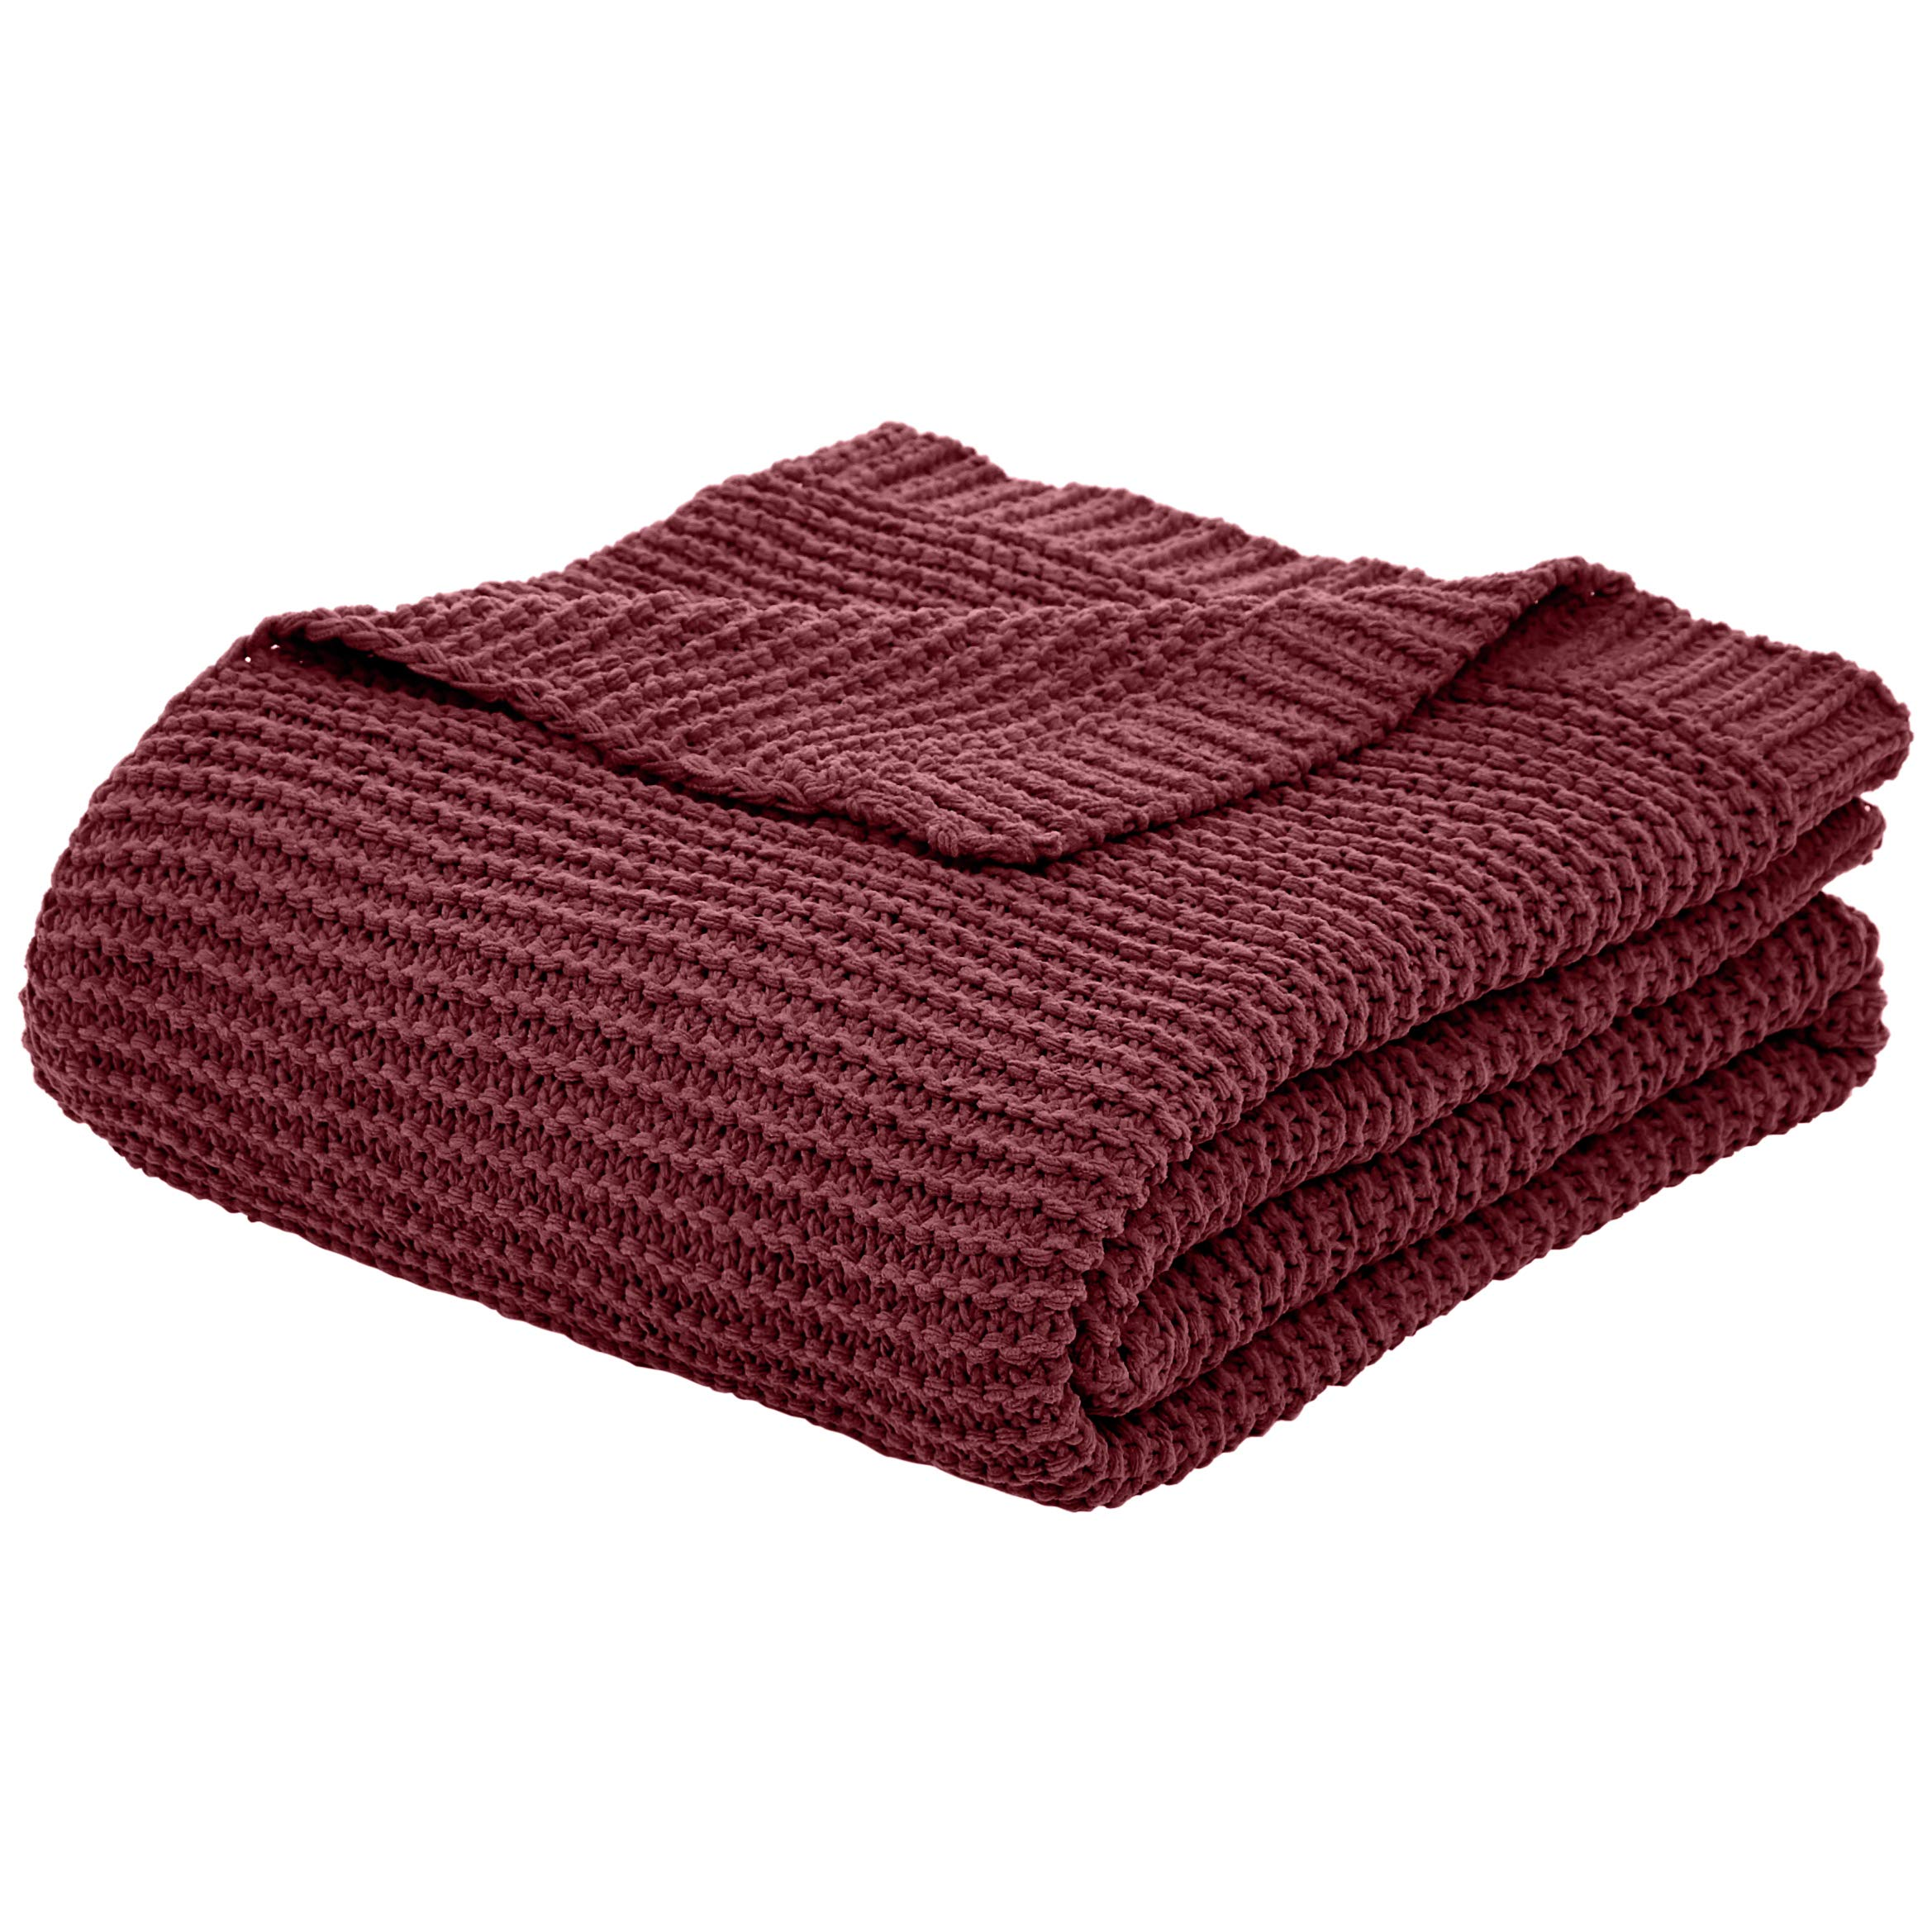 AmazonBasics Knitted Chenille Throw Blanket - 66 x 90 Inches, Bordeaux by AmazonBasics